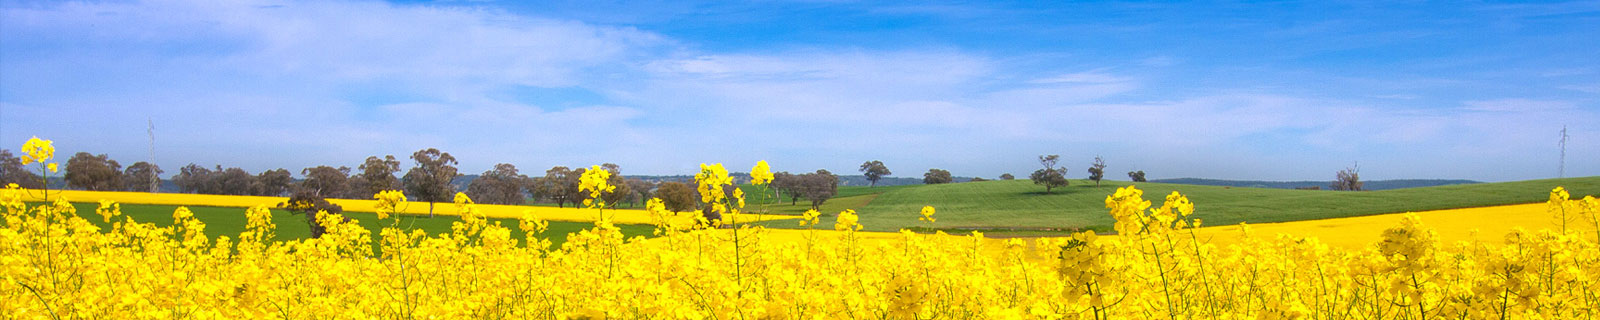 Riverine Plains broadacre farming systems in north-east Victoria and southern New South Wales